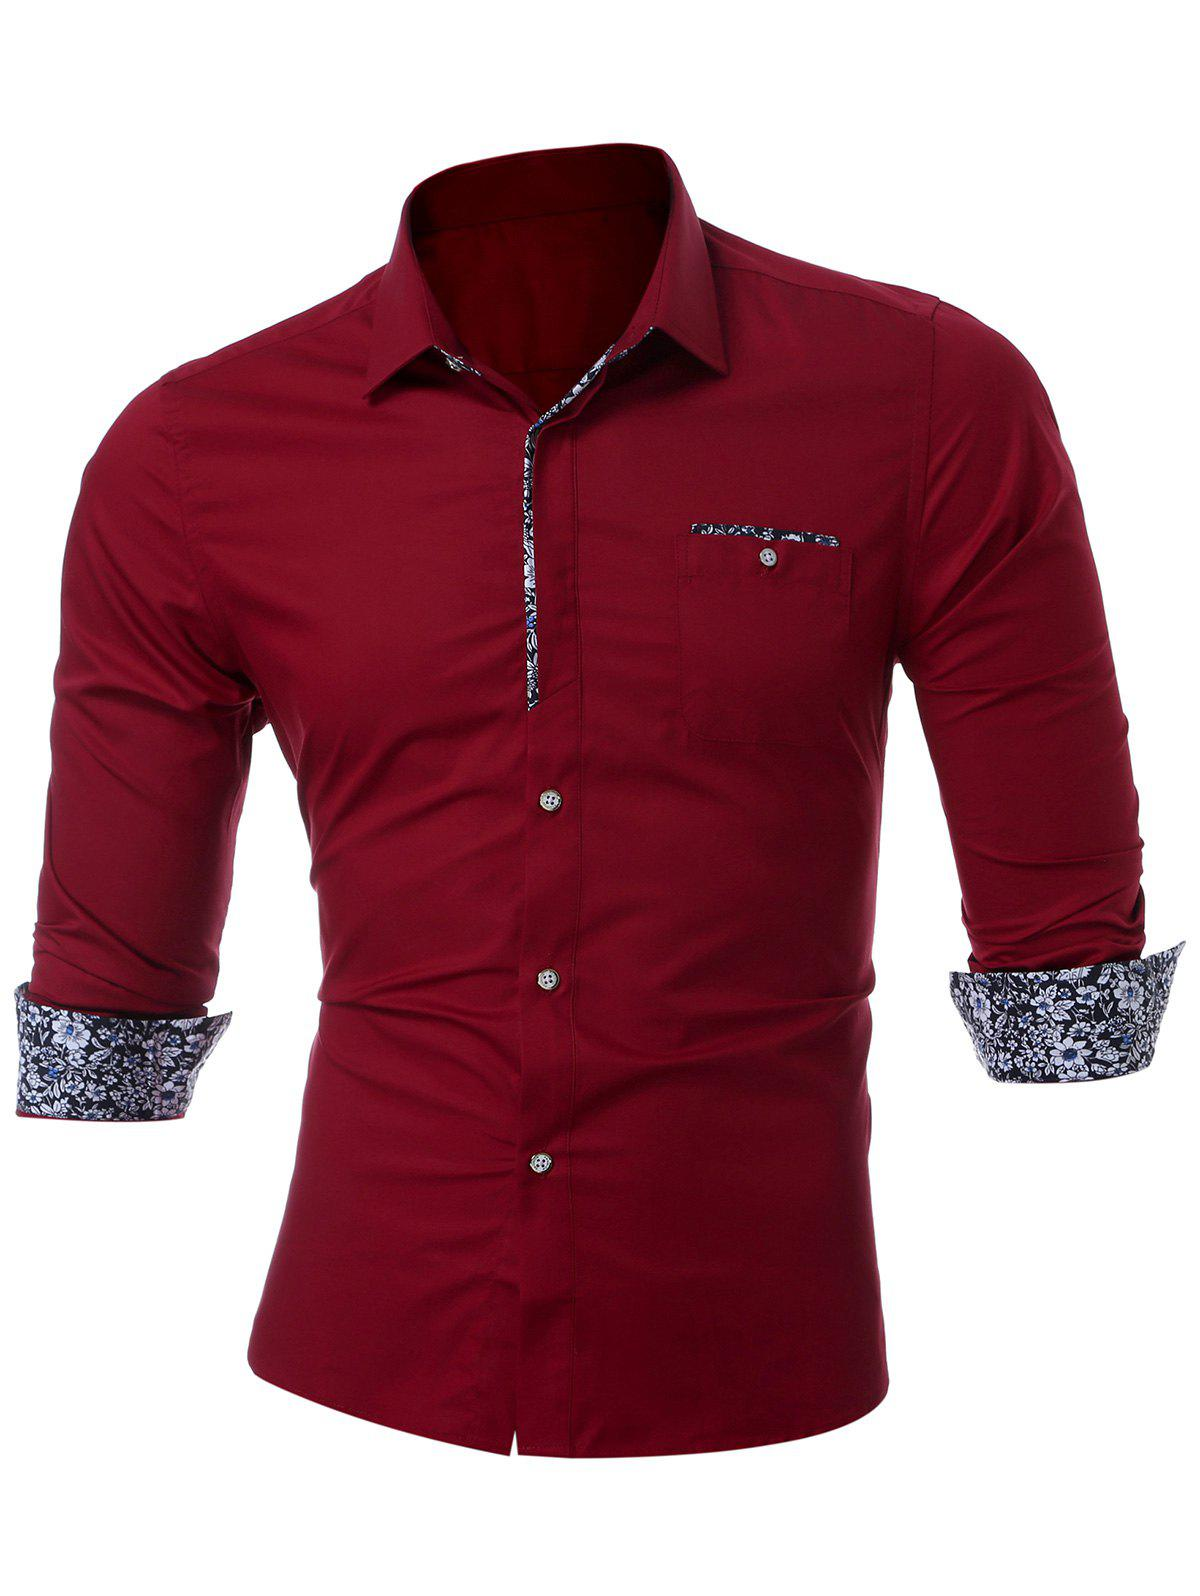 Long Sleeve Chest Pocket Shirt - WINE RED M